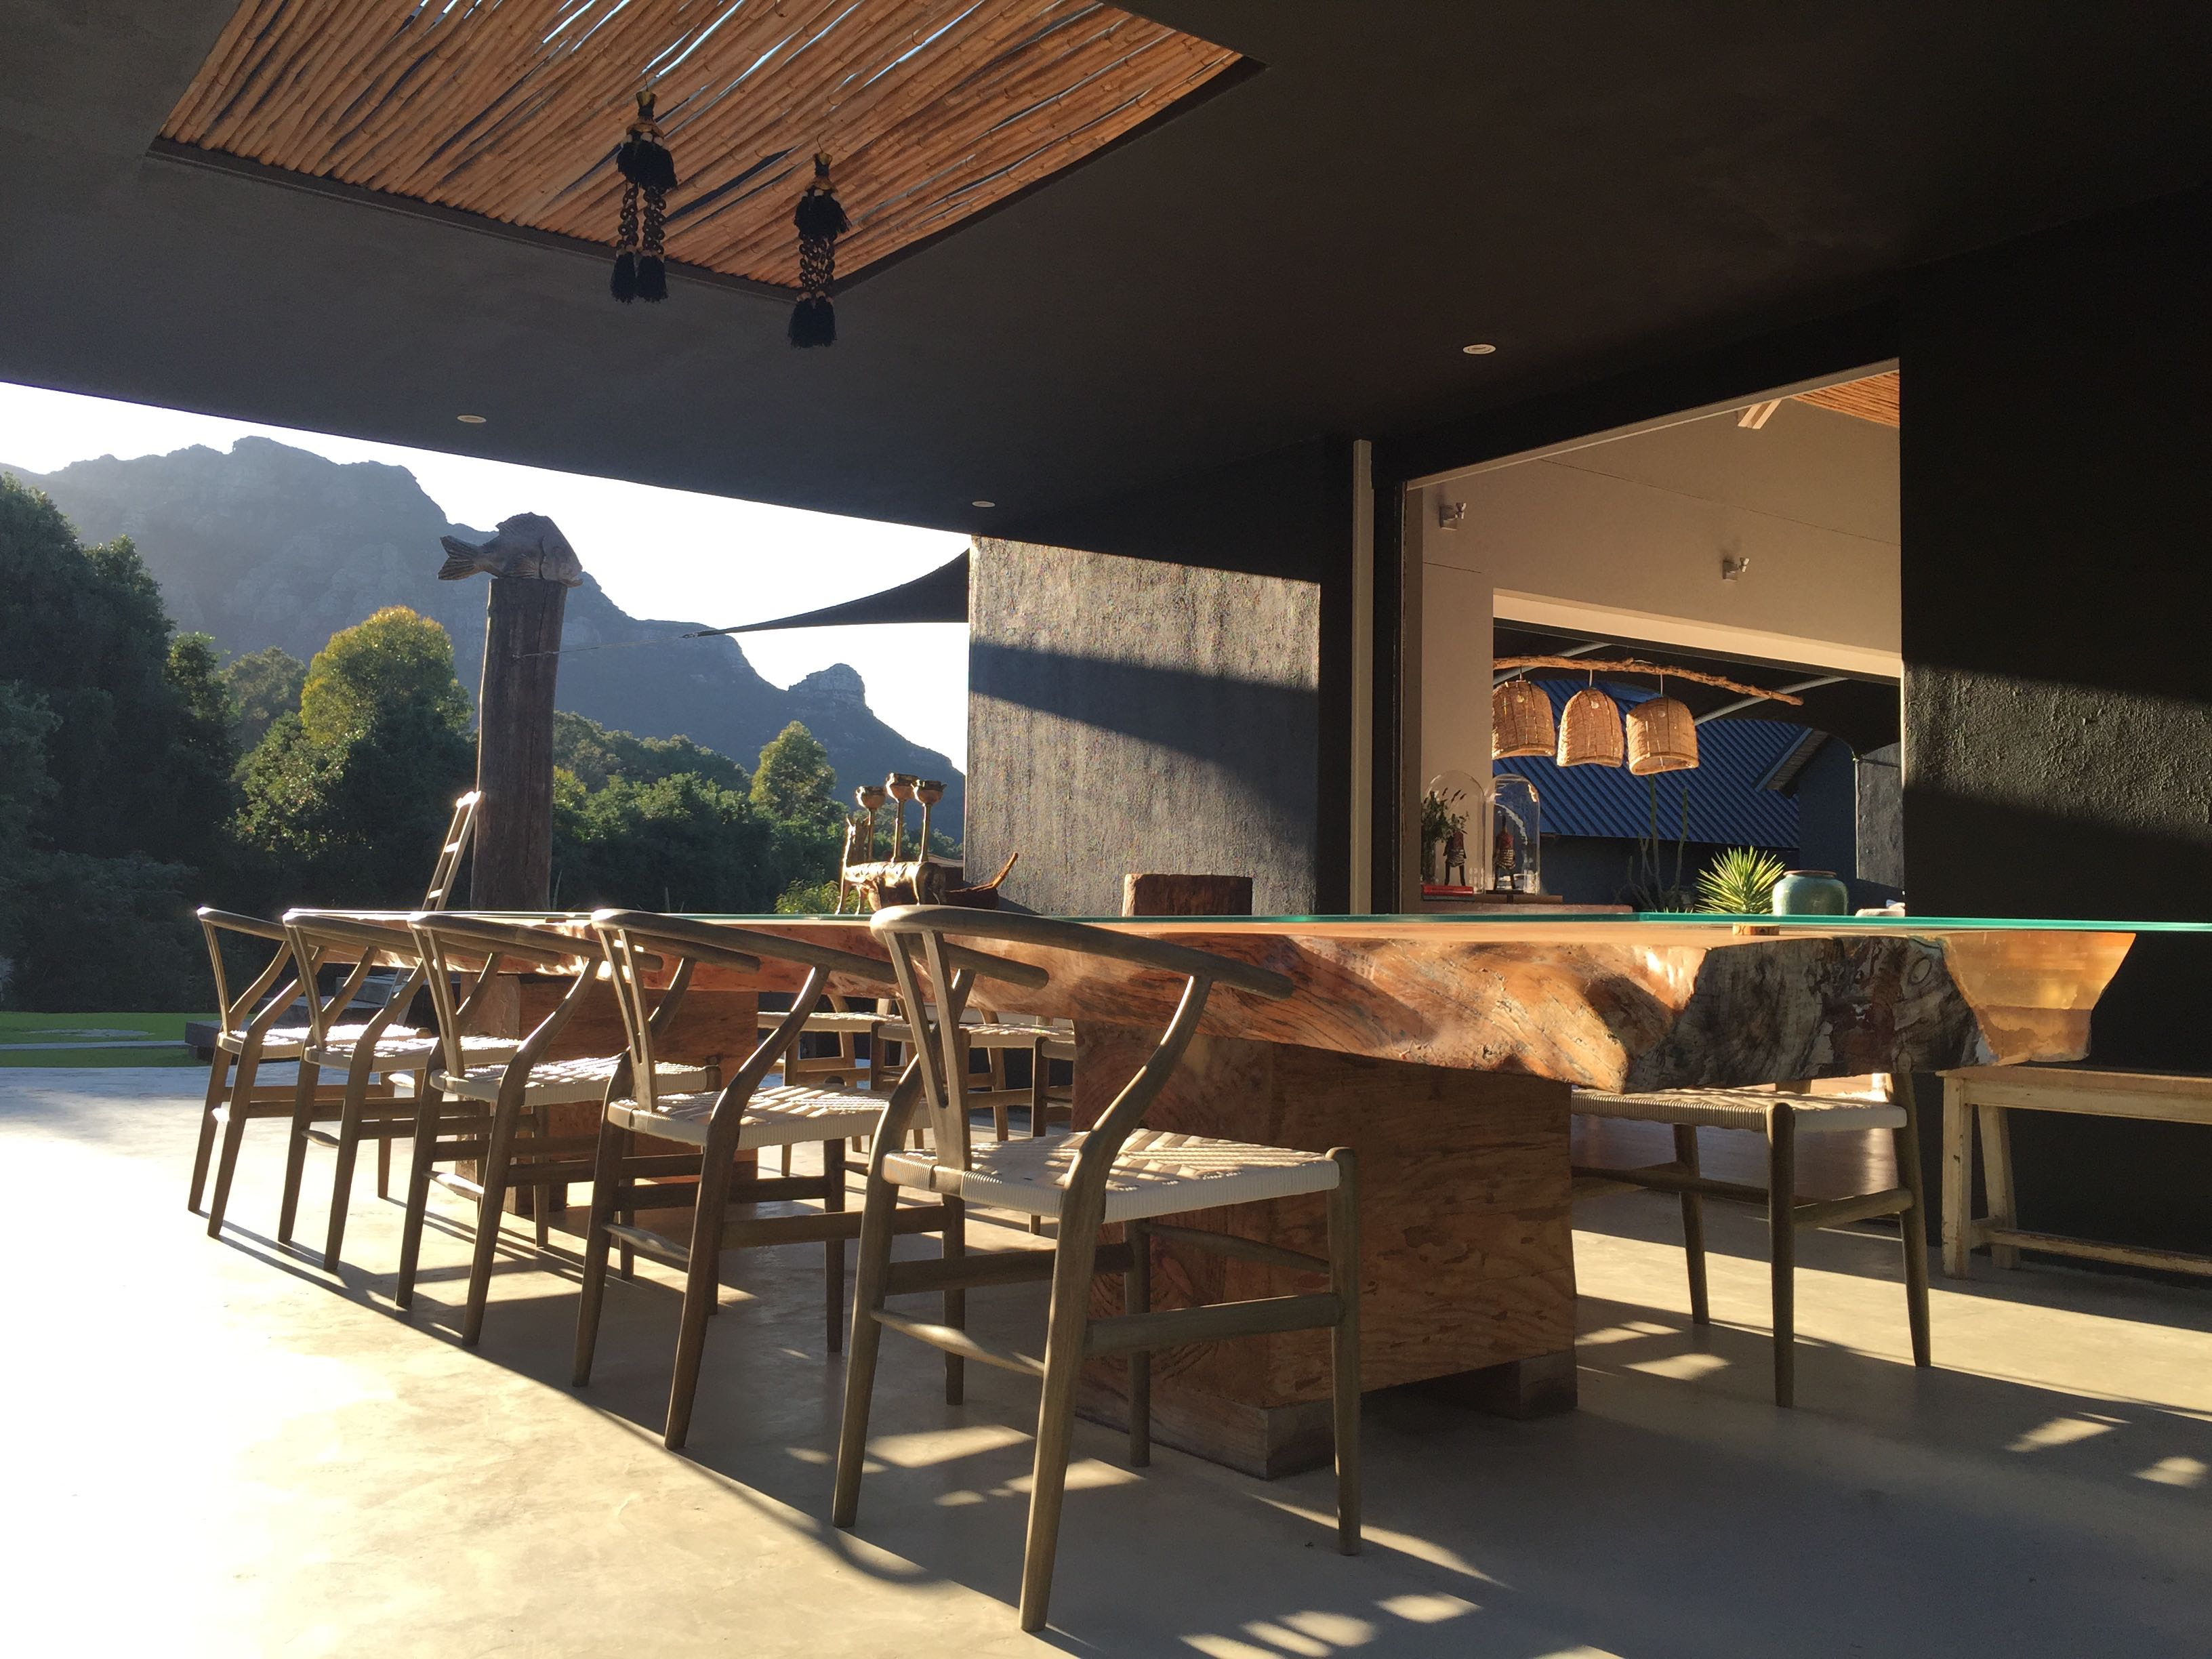 South Africa Listing – Luxury Mountainous Private Retreat 3